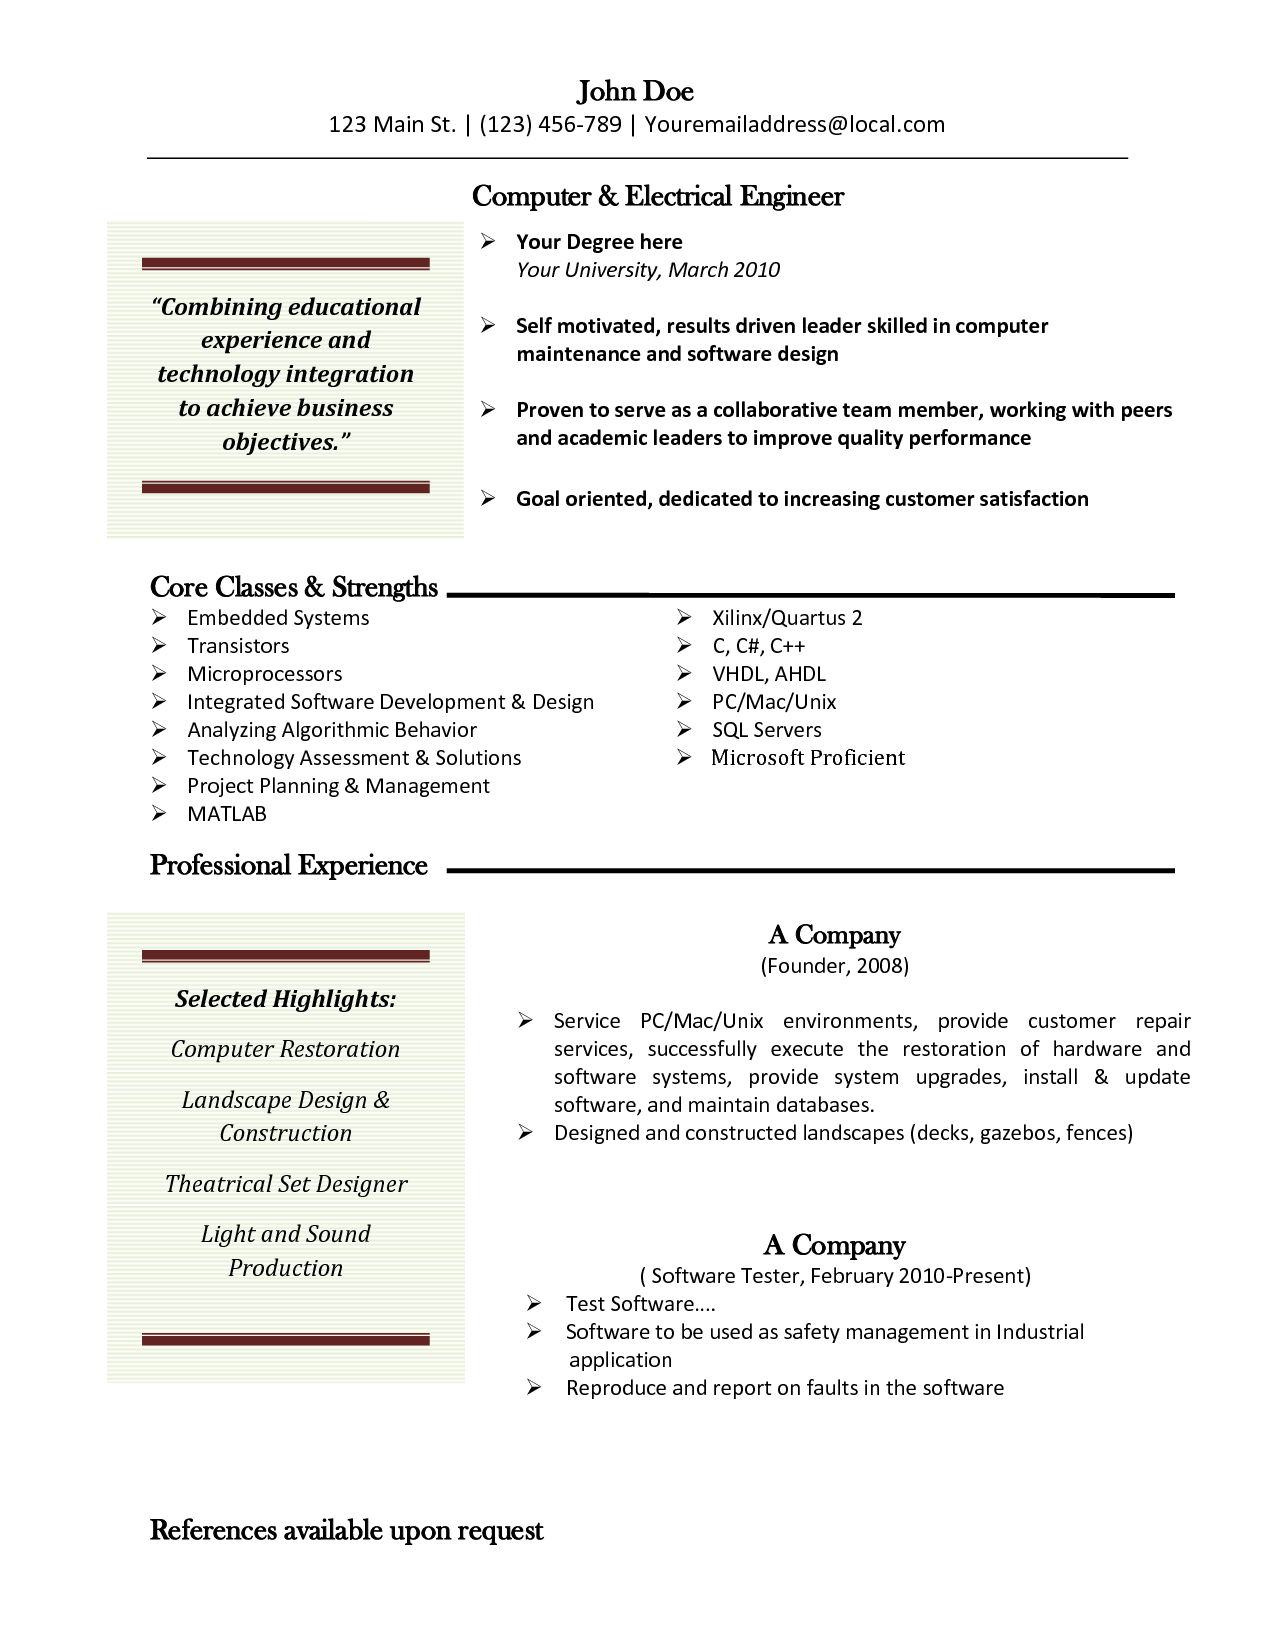 Exceptional Free Resume Templates For Mac Best TemplateFree Resume Templates Cover  Letter Examples  Resume Templates Free For Mac